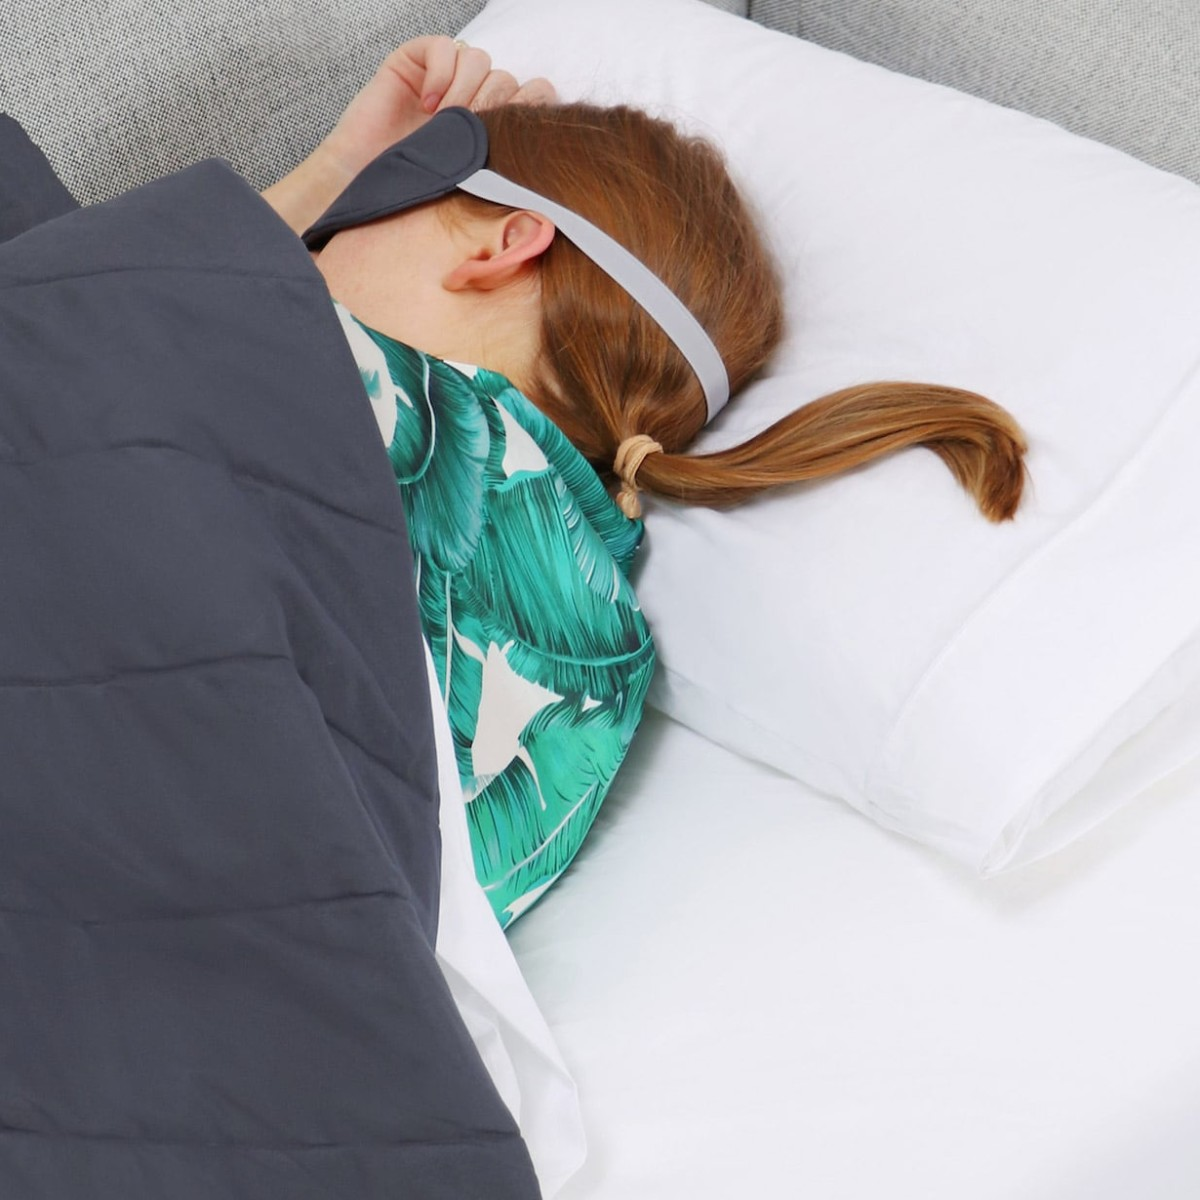 Burrow Sleep Kit Sofa Bedtime Set offers everything your guests need to feel at home